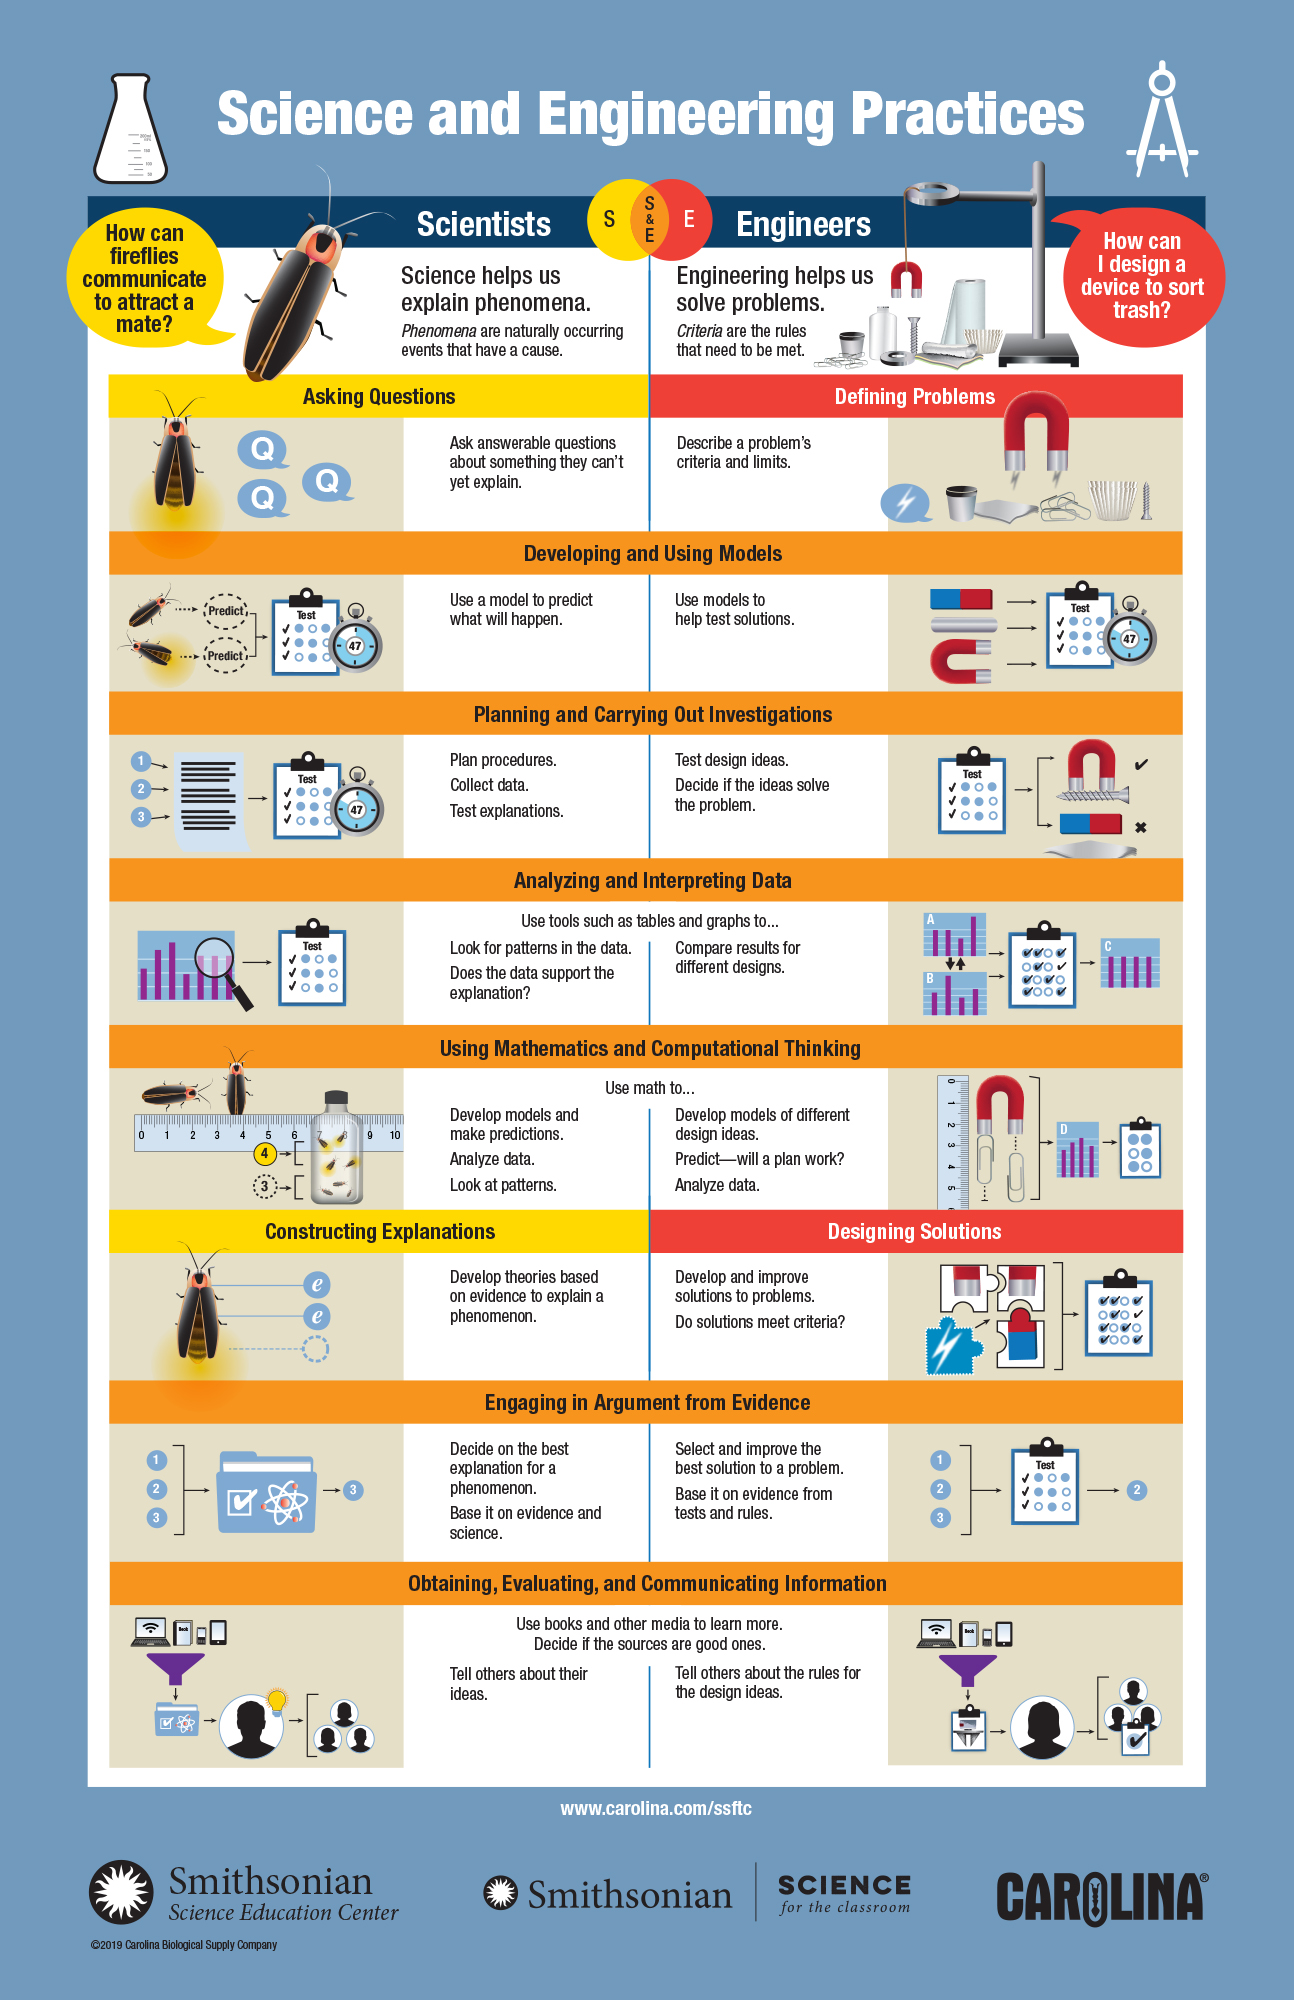 Science and Engineering Practices Infographic